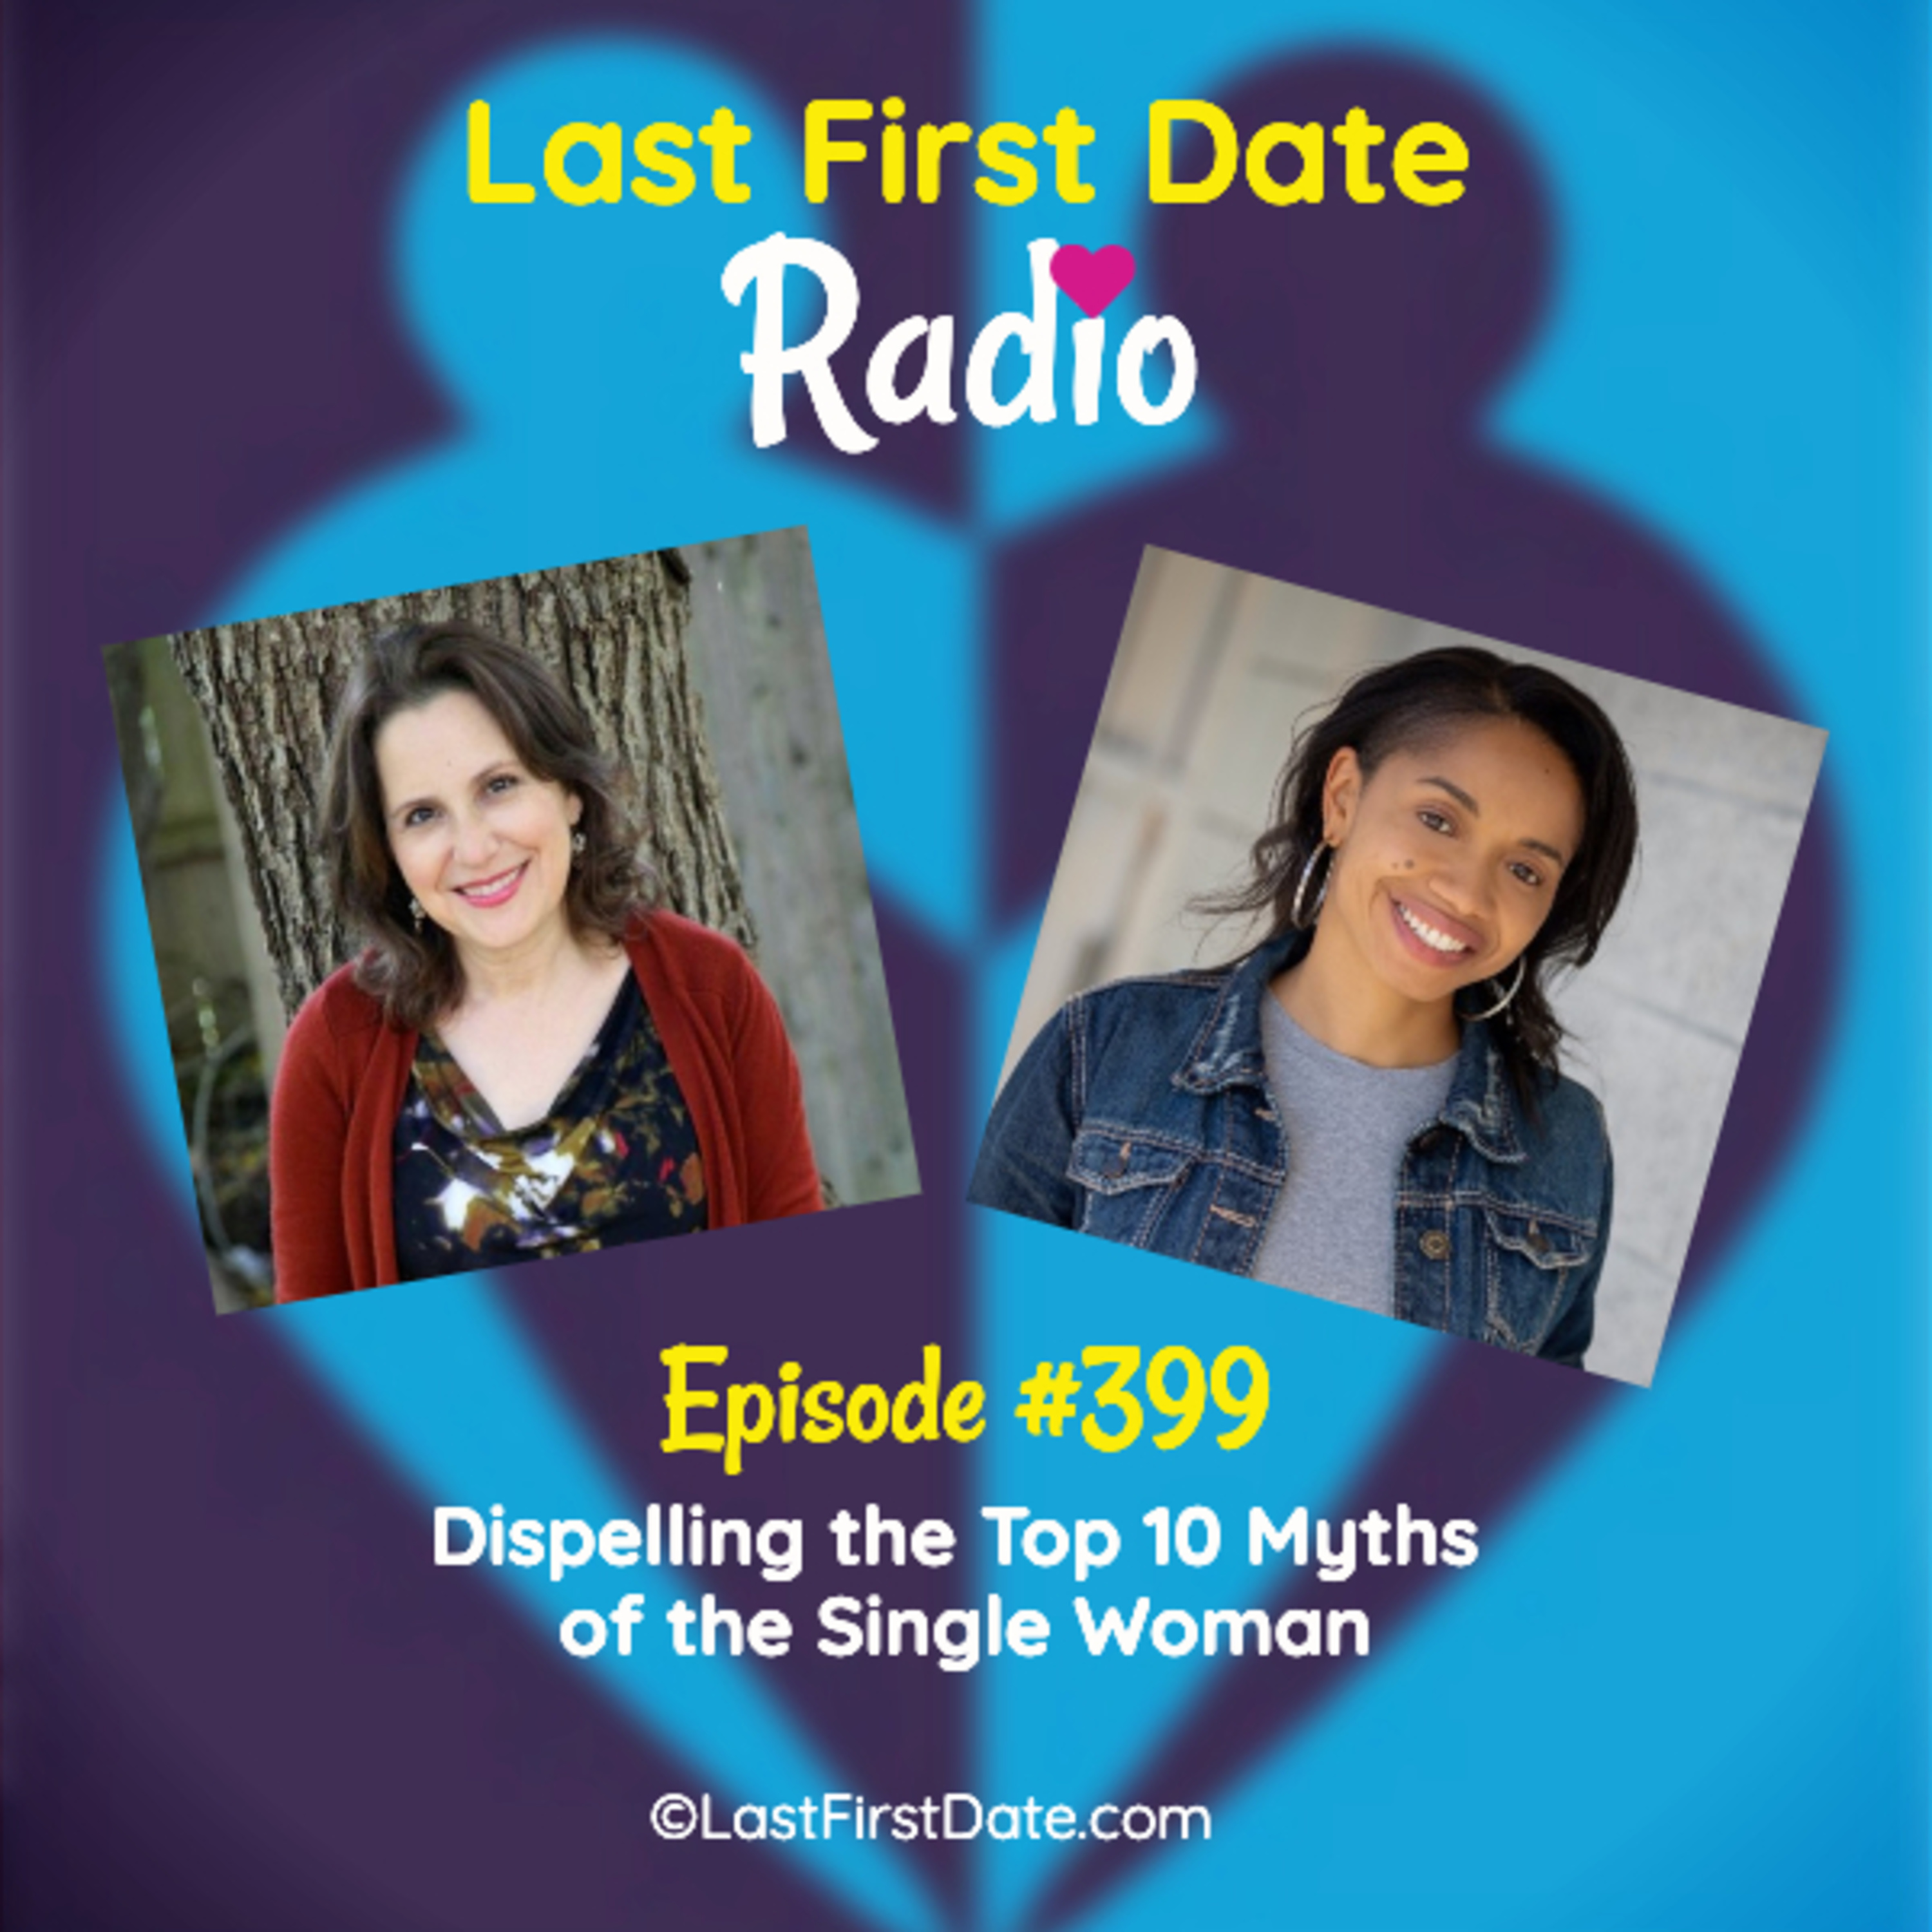 Last First Date Radio - EP 399: Dispelling the Top 10 Myths of the Single Woman